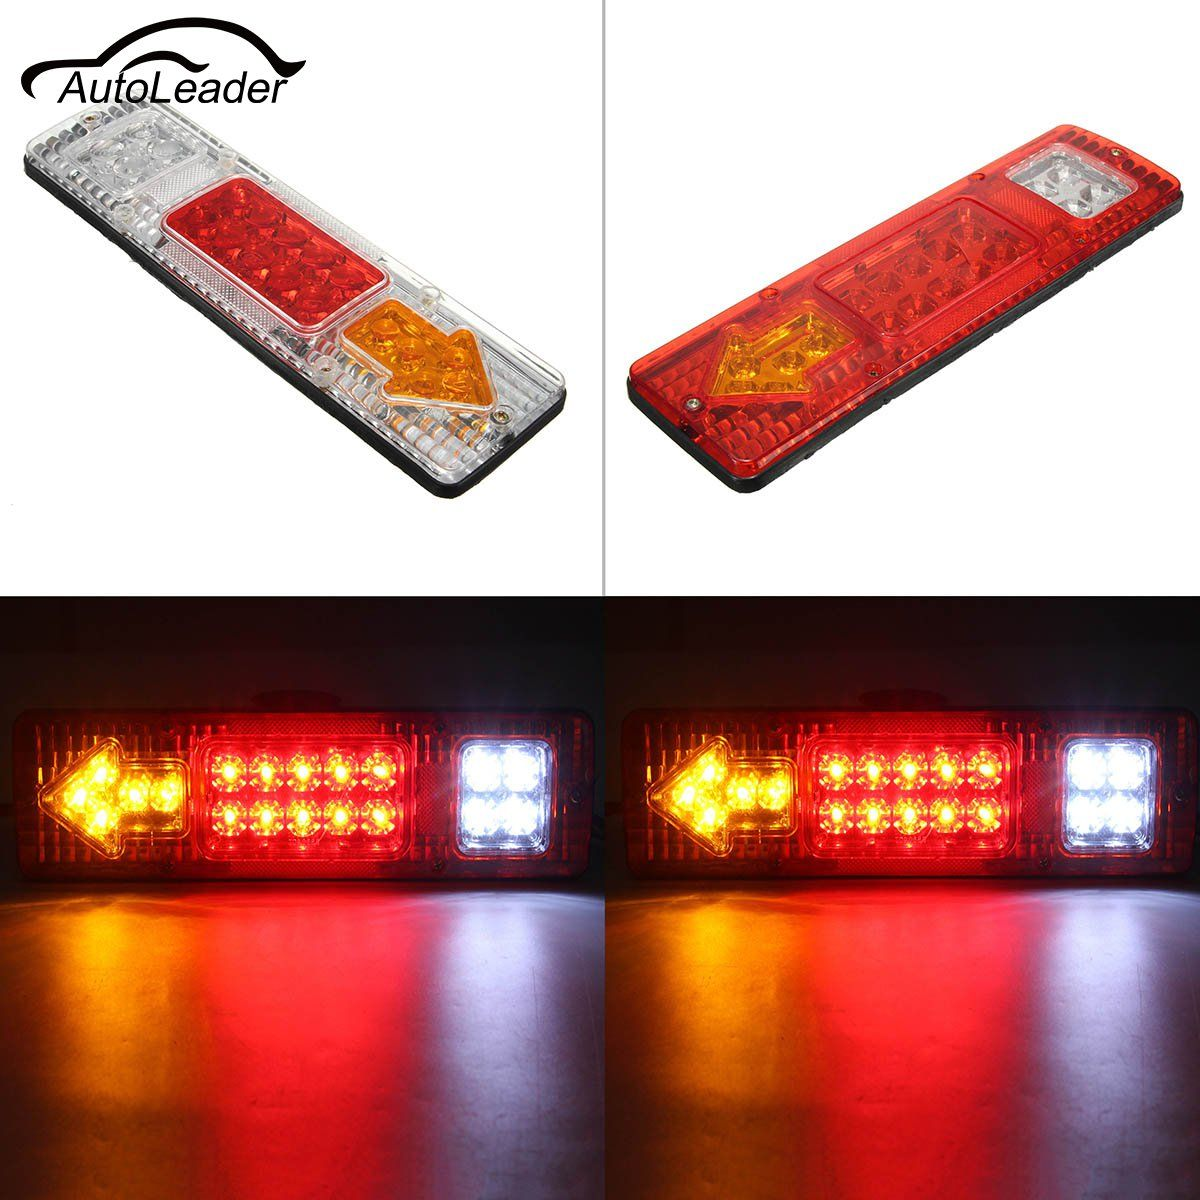 1.5W 5A Trucks Railer Tail Light LED 24V DC Trailers Van Lamp Reversing 19 LEDs In Each Lamp